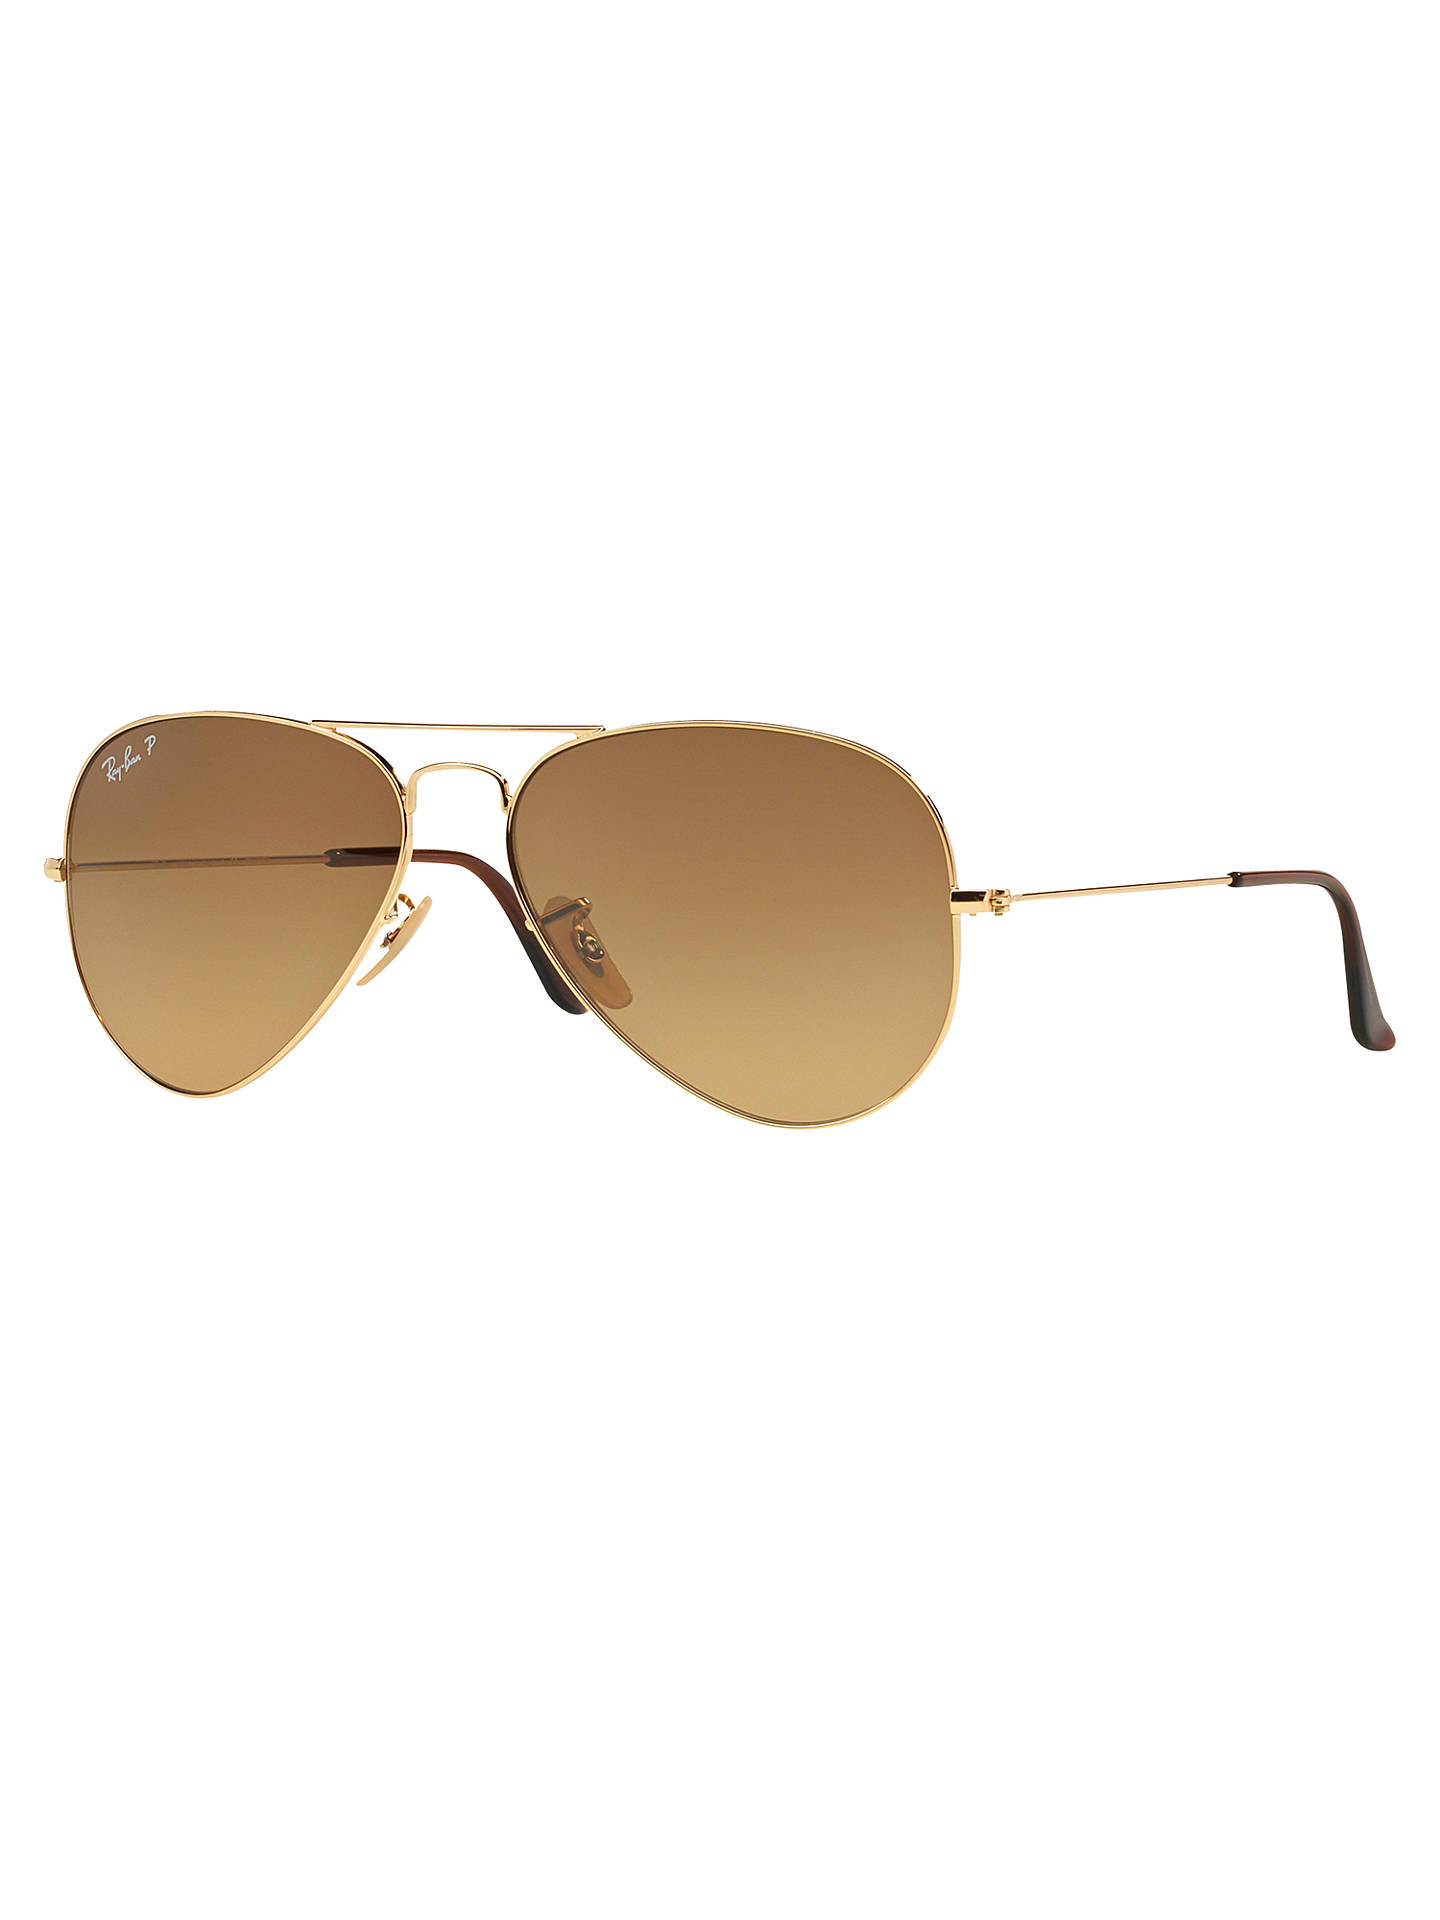 e7f948771 Buy Ray-Ban RB3025 Polarised Aviator Sunglasses, Shiny Gold/Brown Gradient  Online at ...